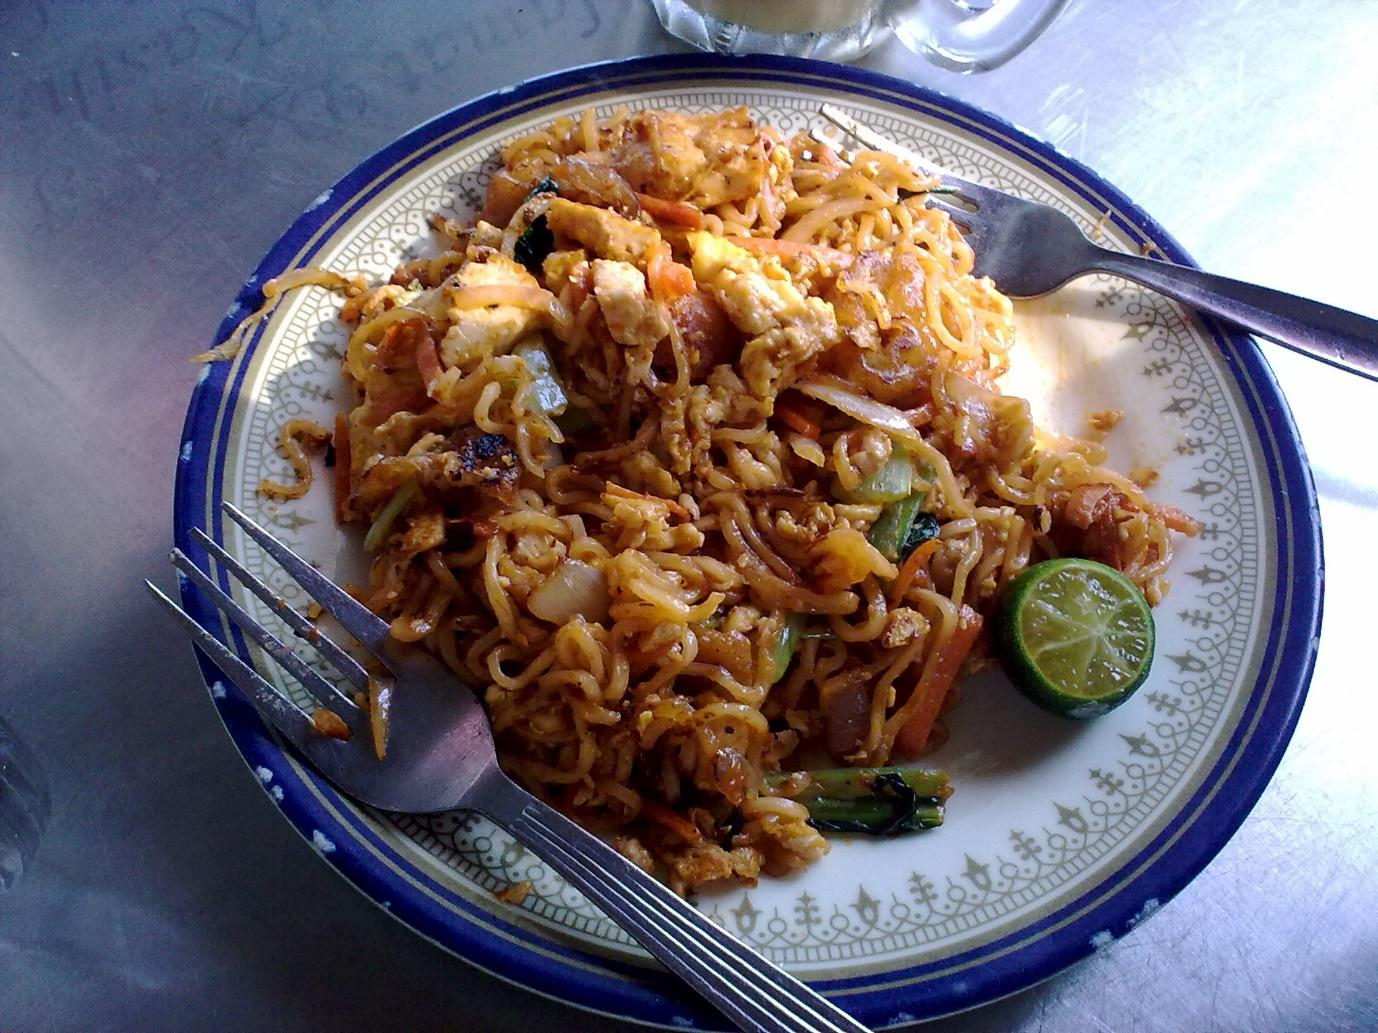 http://upload.wikimedia.org/wikipedia/commons/4/46/Maggi_Goreng.jpg